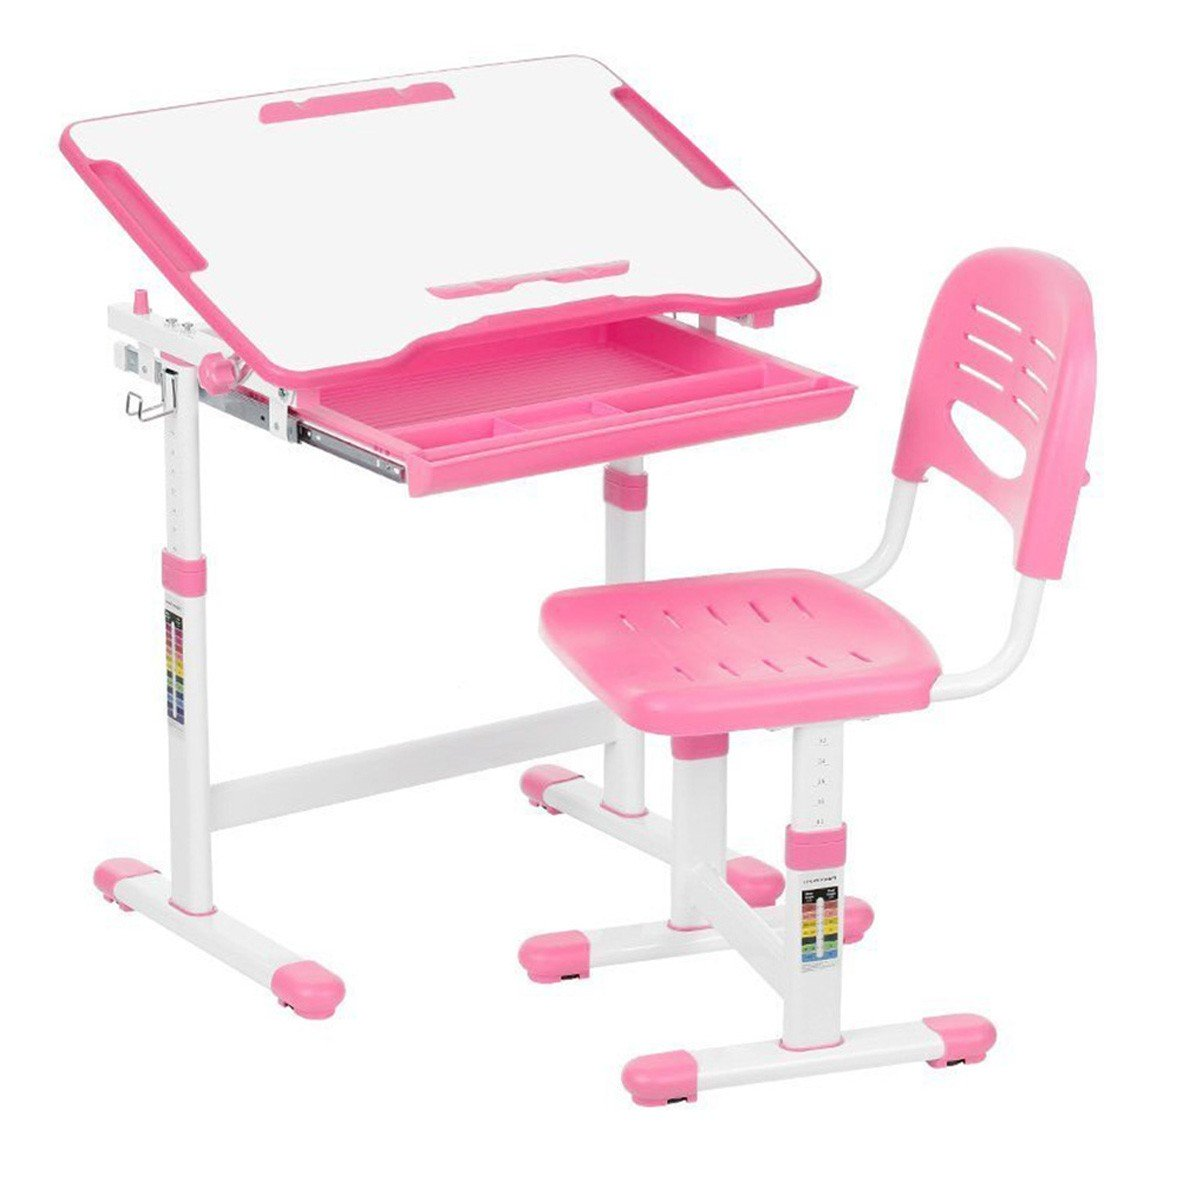 KidzDesk KD26P Ergonomic Height Adjustable Children Desk and Chair Set (Pink)